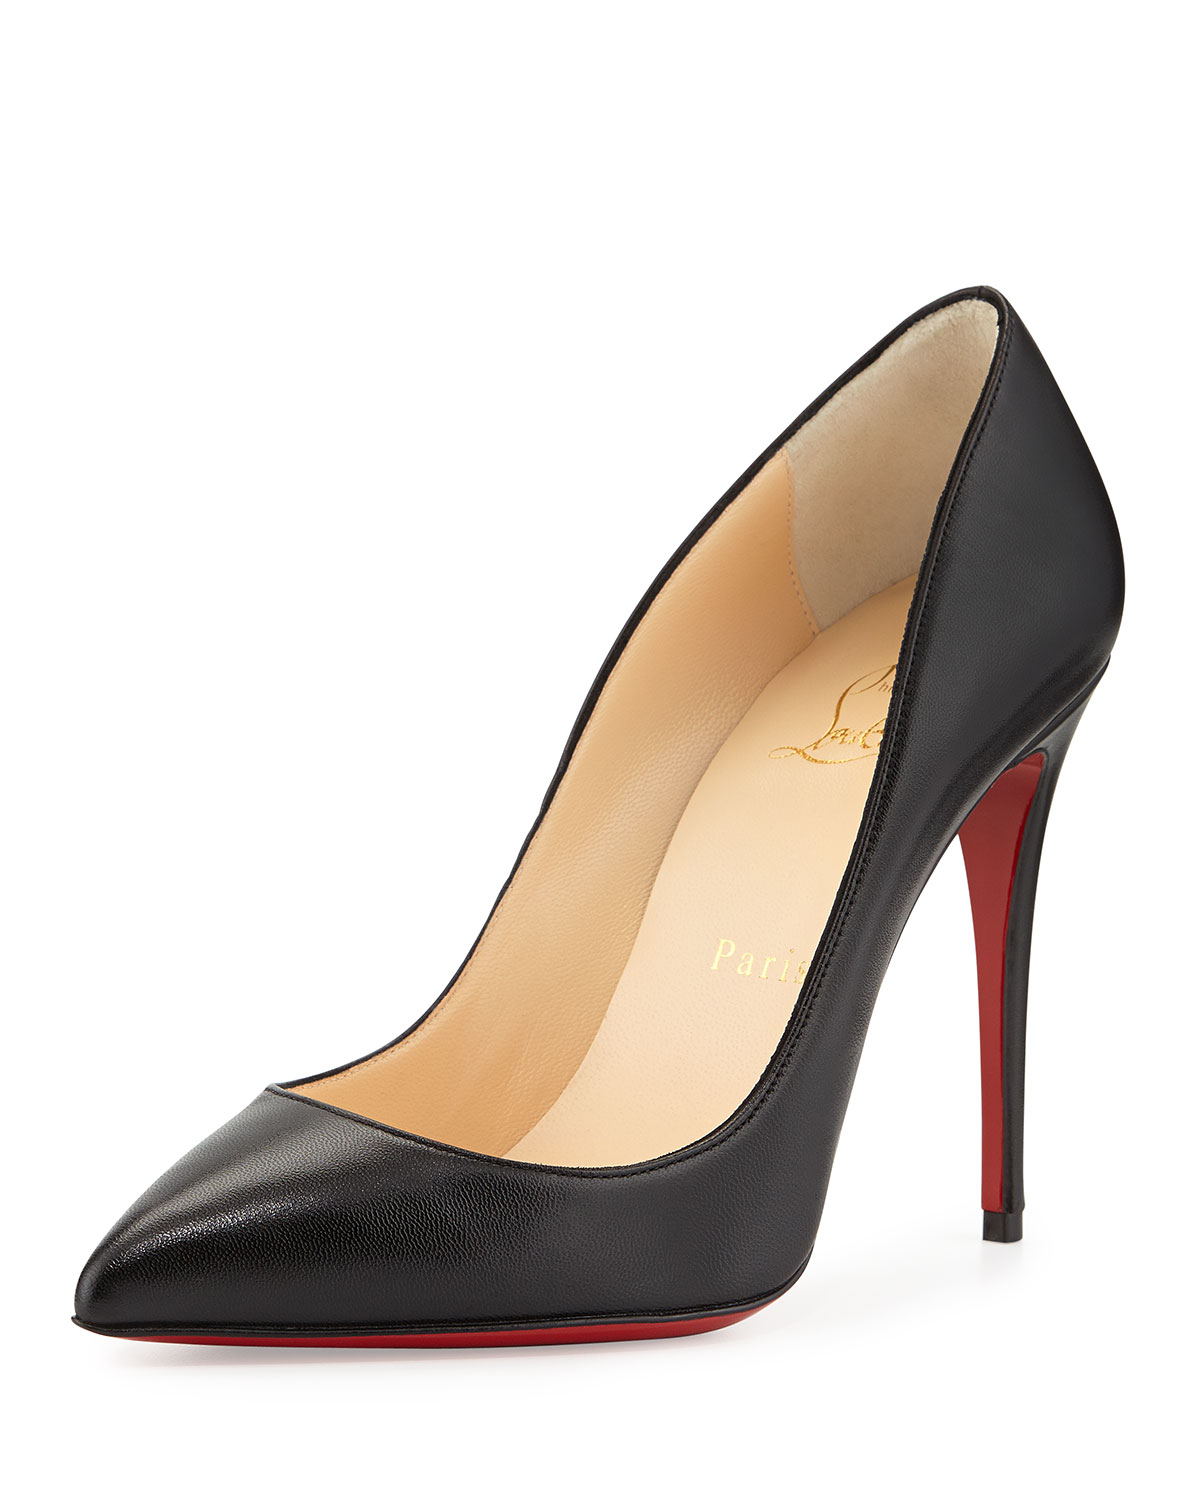 Christian Louboutin Pigalle Follies Point-Toe Red Sole Pump, Black